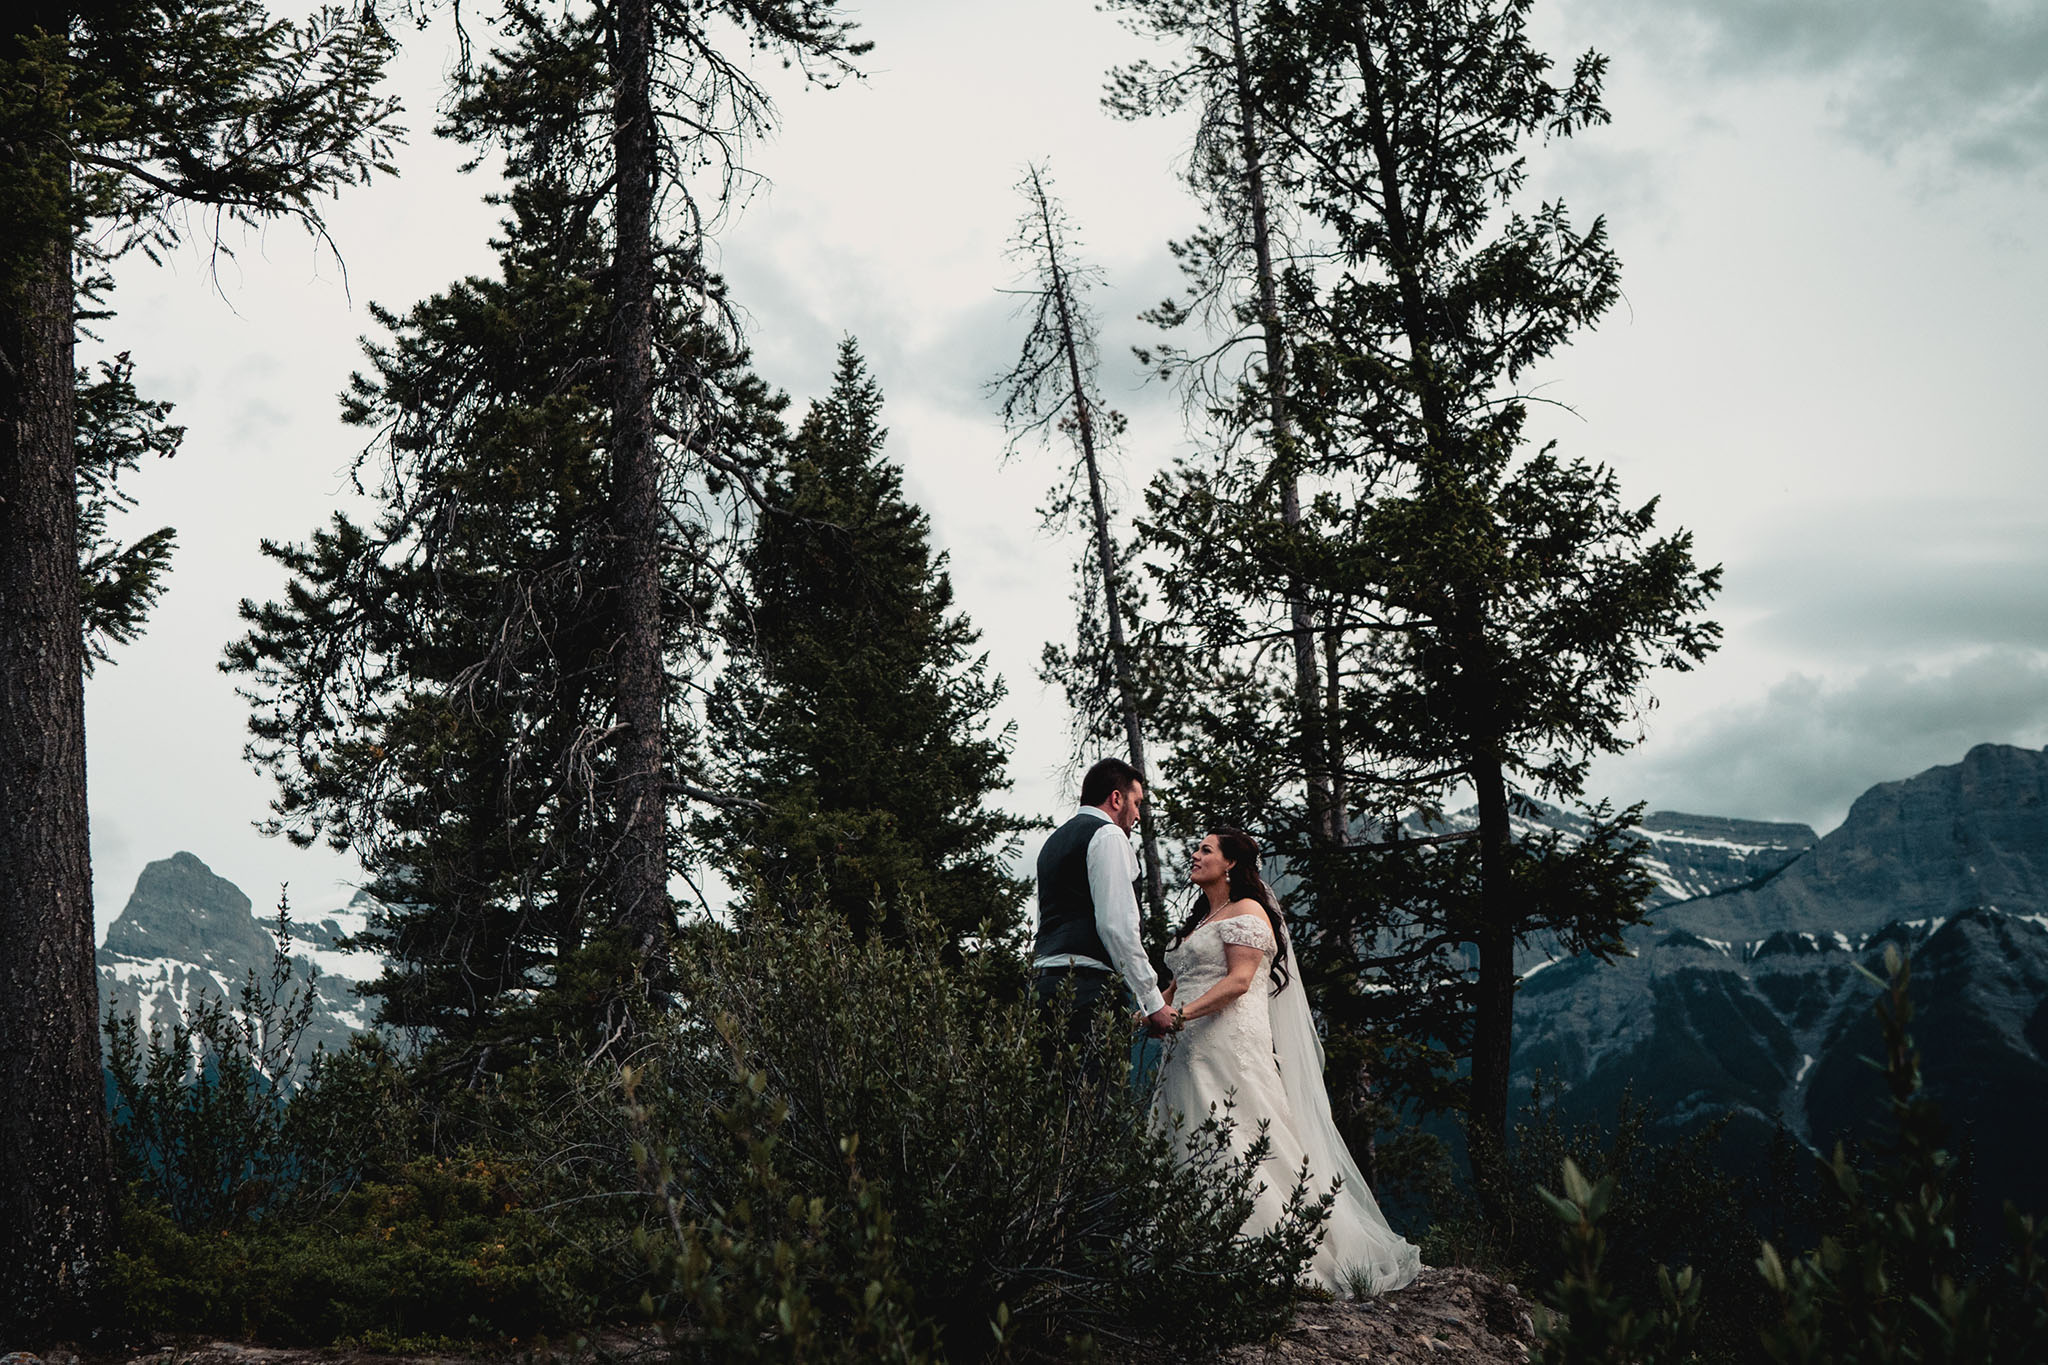 Gorgeous couple with the Rocky Mountains behind them as a backdrop.